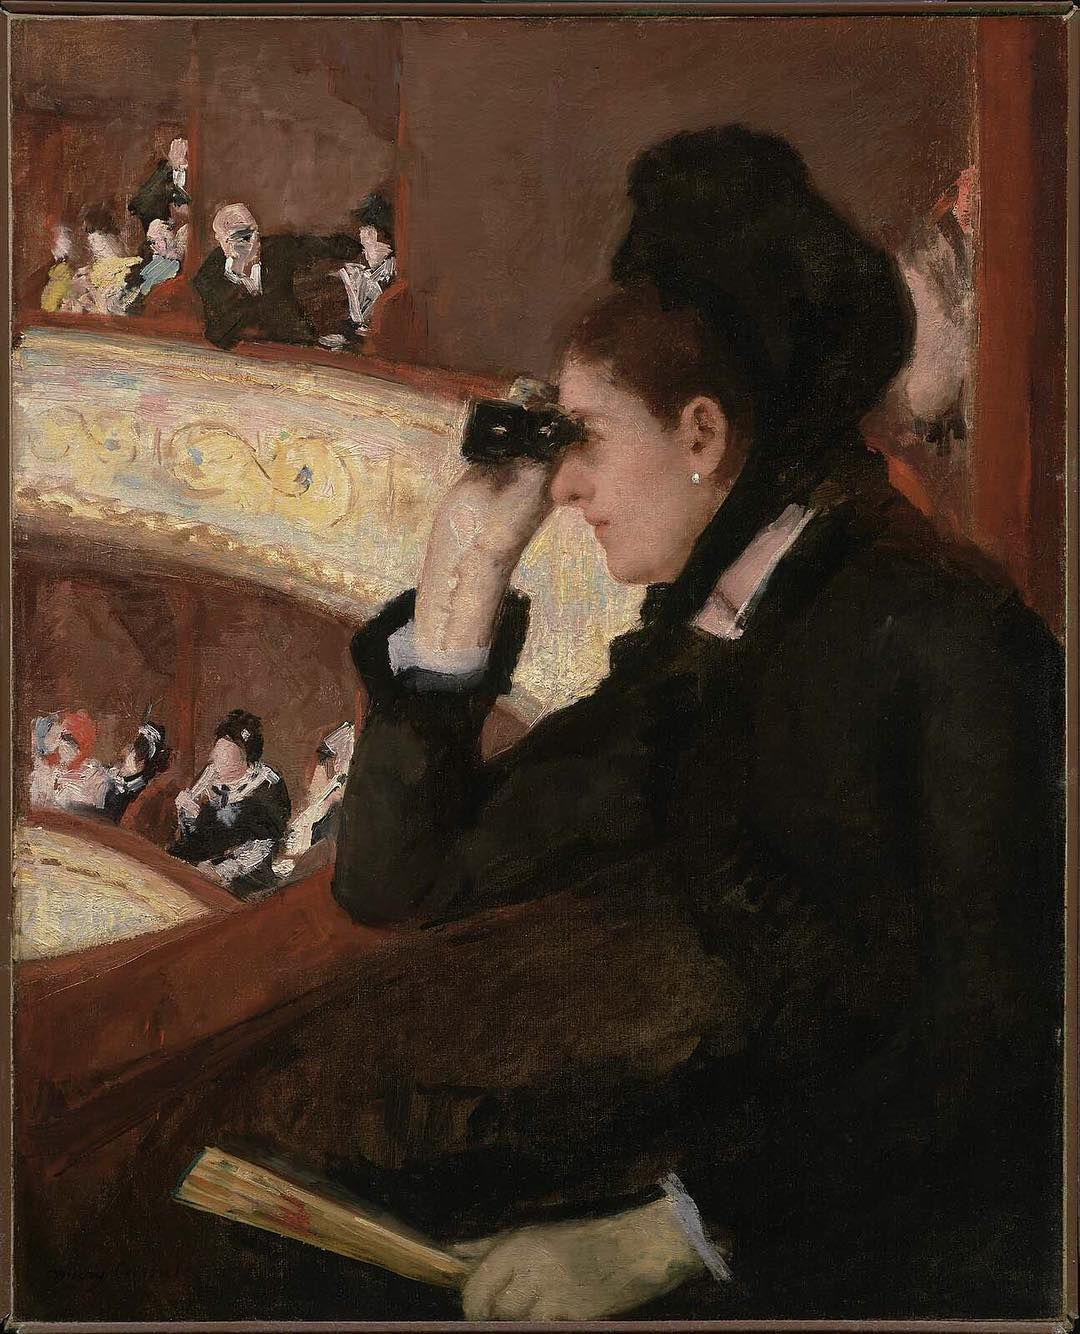 """In the Loge"" was the first of #MaryCassatt's #Impressionist paintings to be displayed in the United States. When it was shown in Boston in 1878, critics described the picture as ""striking,"" adding that Cassatt's painting ""surpassed the strength of most men."" The artist was born #onthisday in 1844."